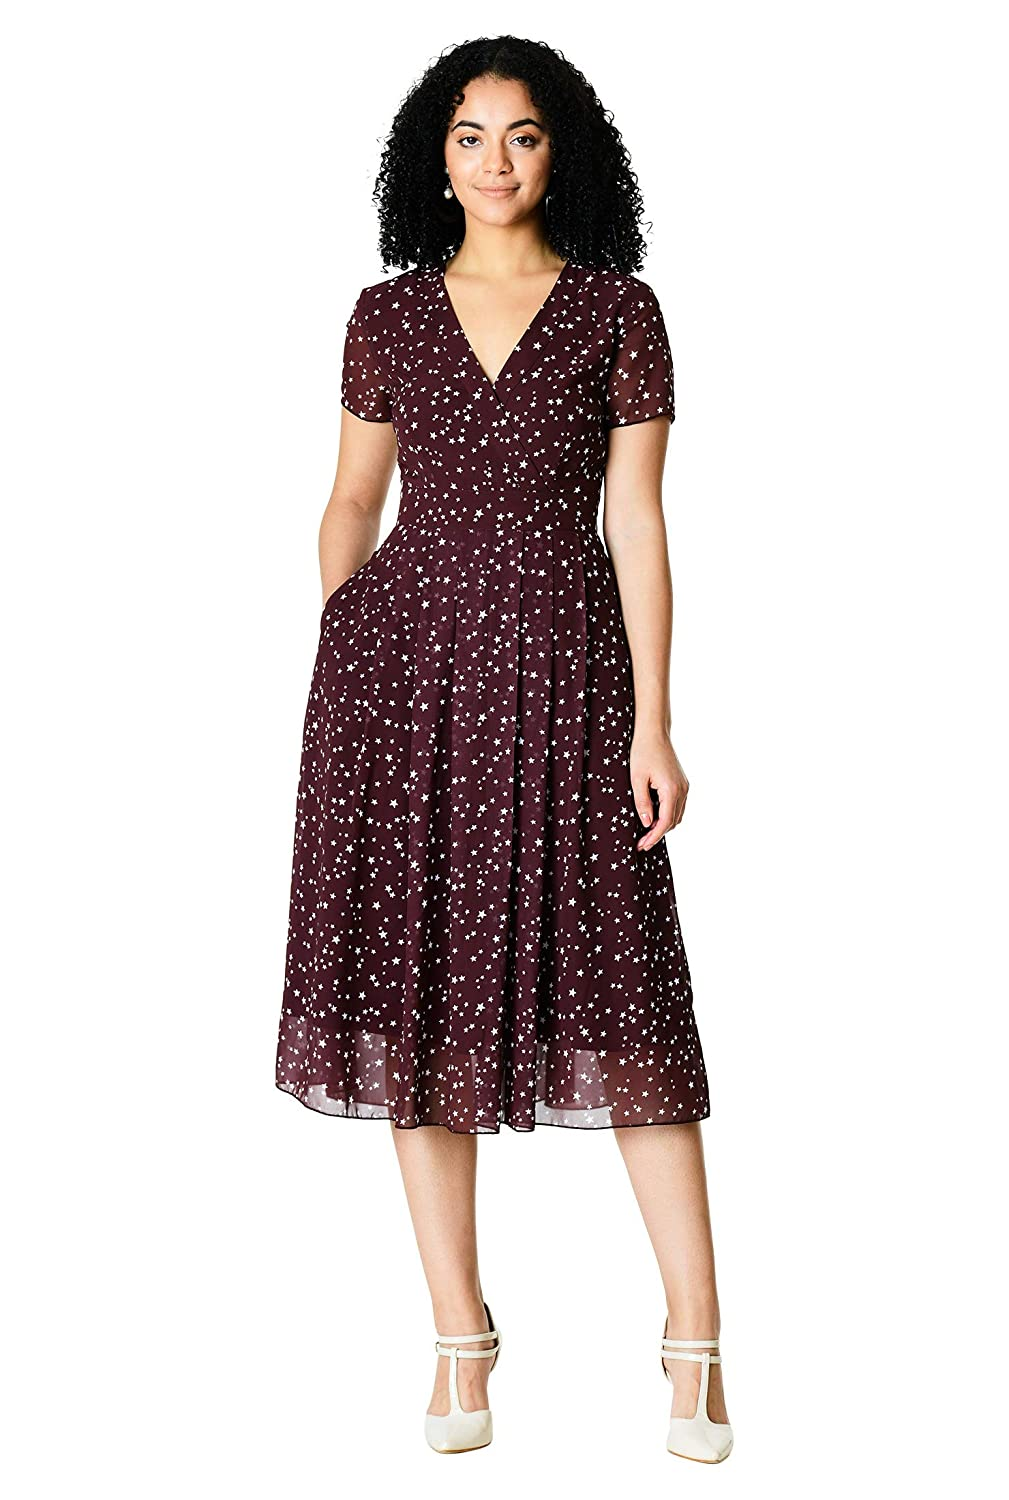 1940s Plus Size Fashion: Style Advice from 1940s to Today eShakti Womens Surplice Star Print Georgette Dress $74.95 AT vintagedancer.com